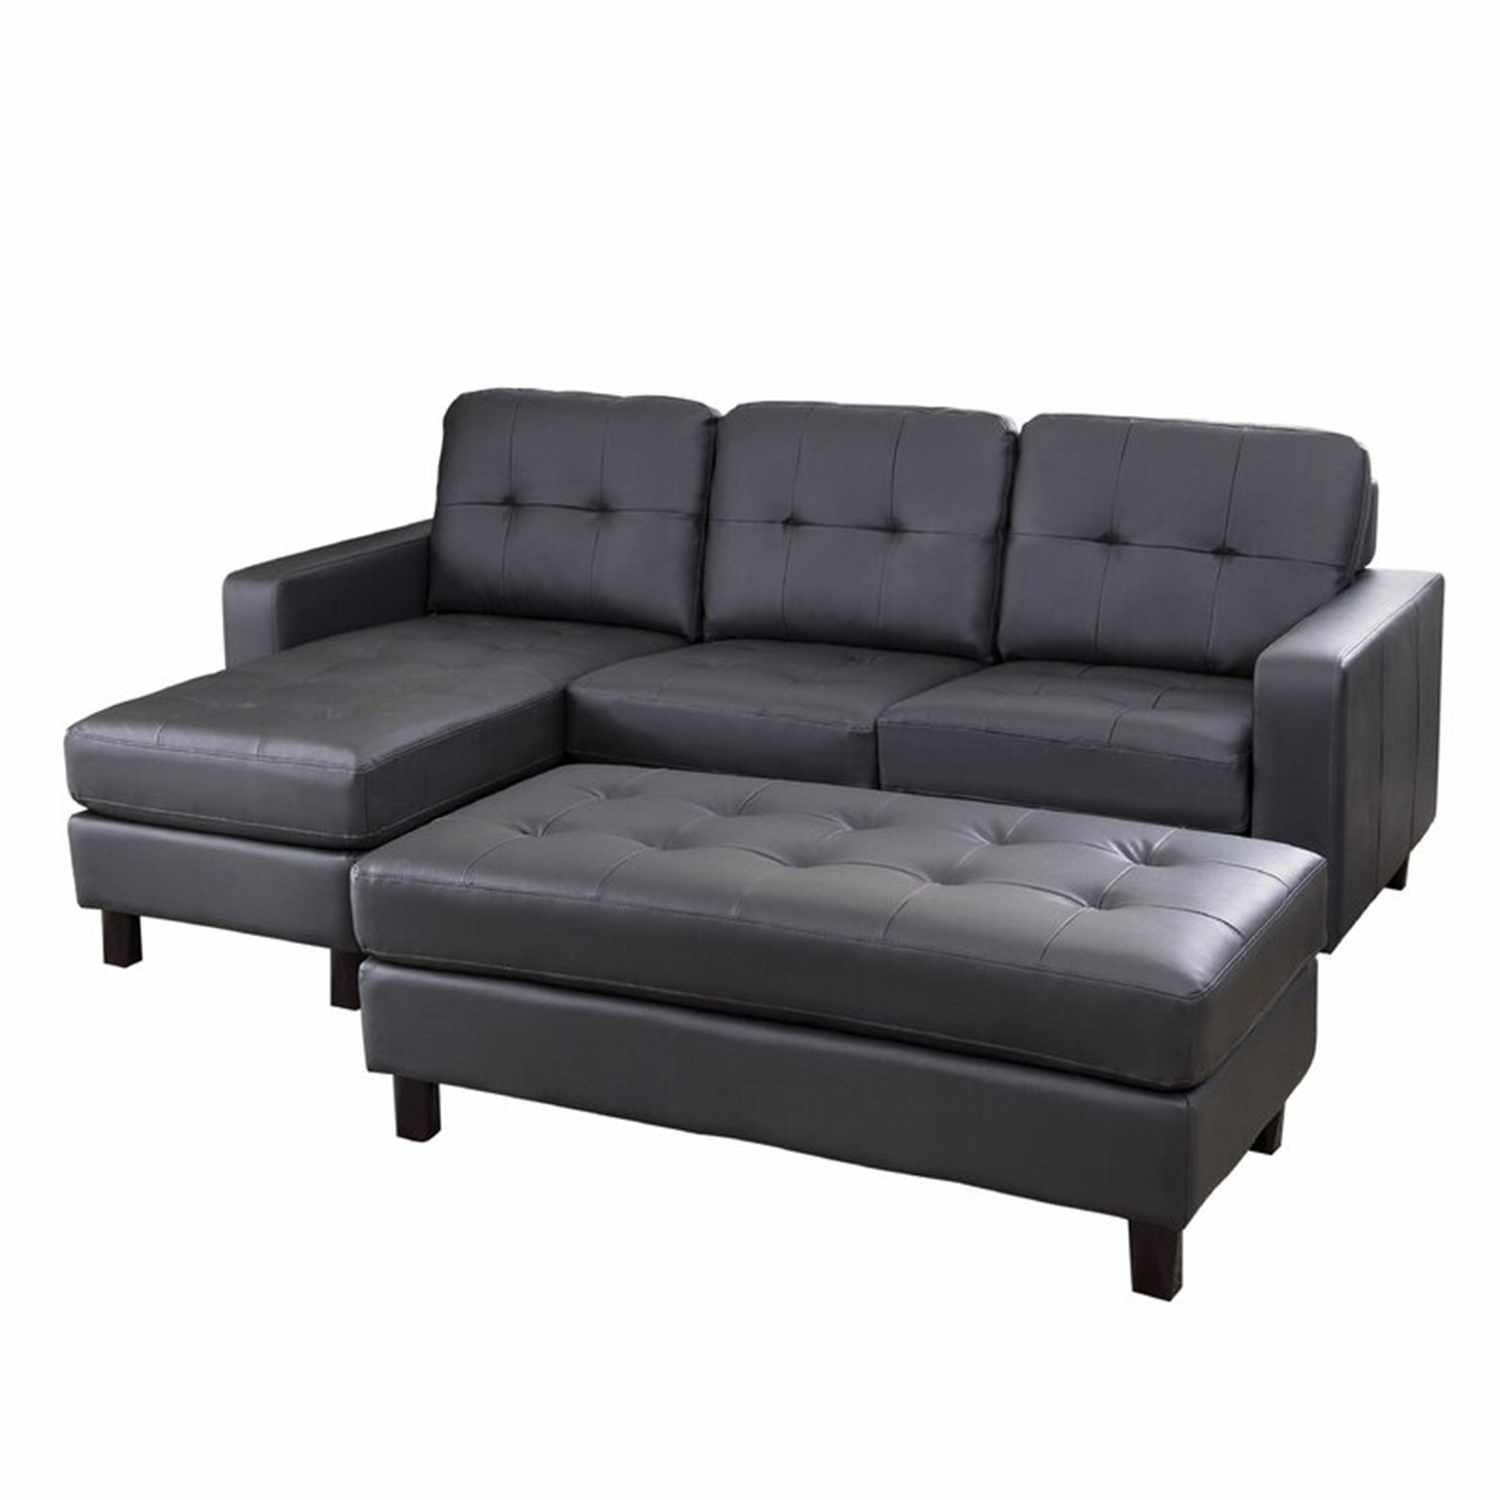 "Breakwater Bay Oliver 90"" Reversible Modular Sectional with Ottoman"